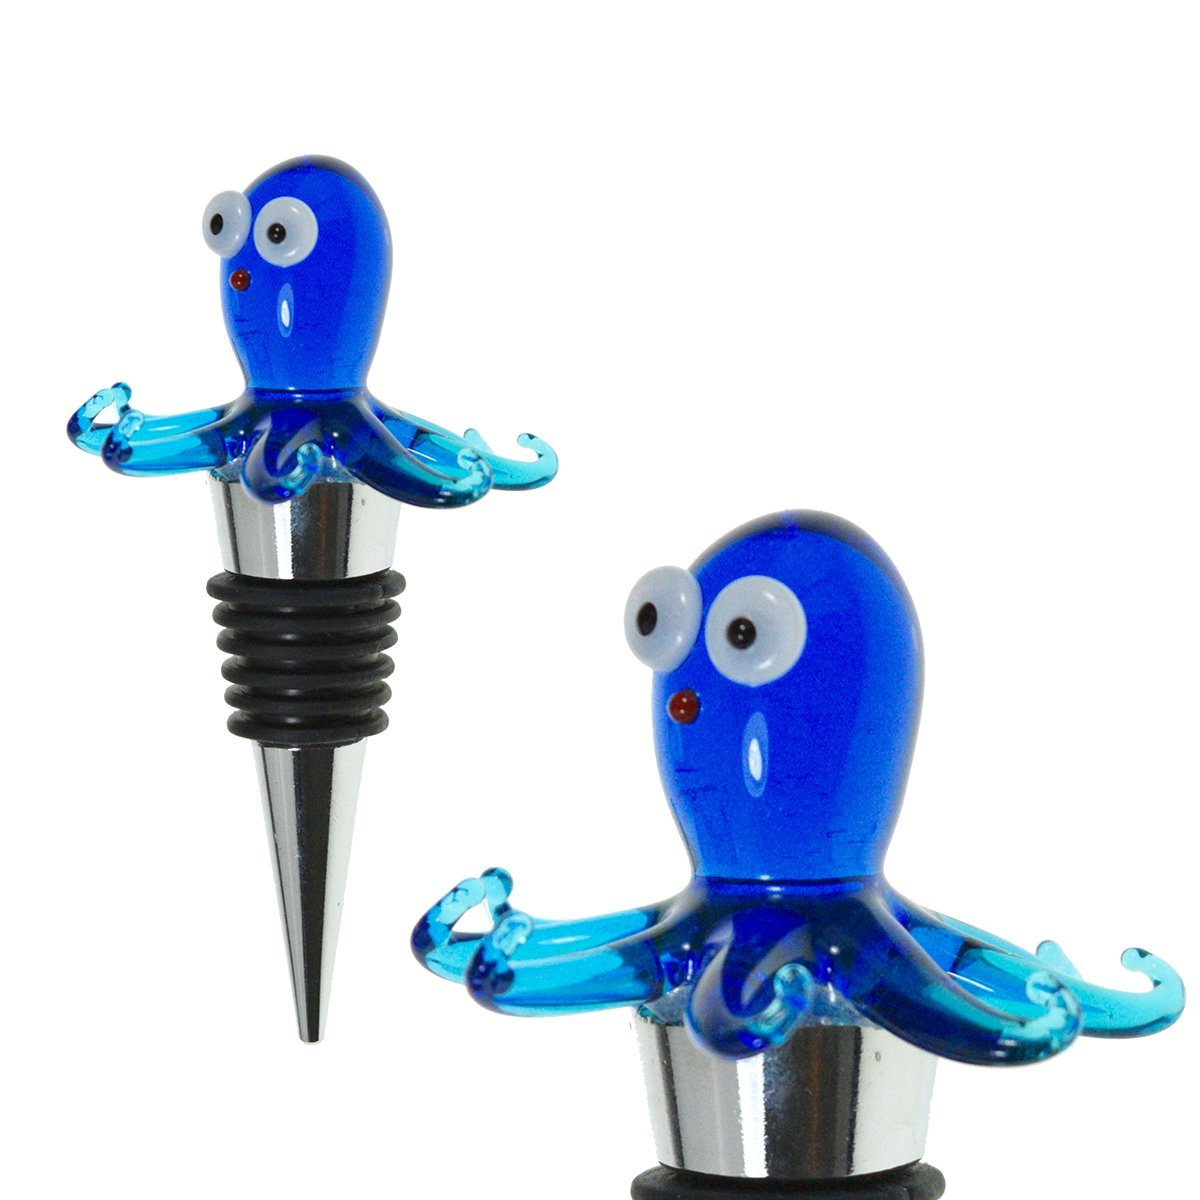 Glass Octopus Wine Bottle Stopper (20+ Designs to Choose From) - Colorful, Unique, Handmade, Eye-Catching Decorative Glass Wine Bottle Stopper … (Octopus)